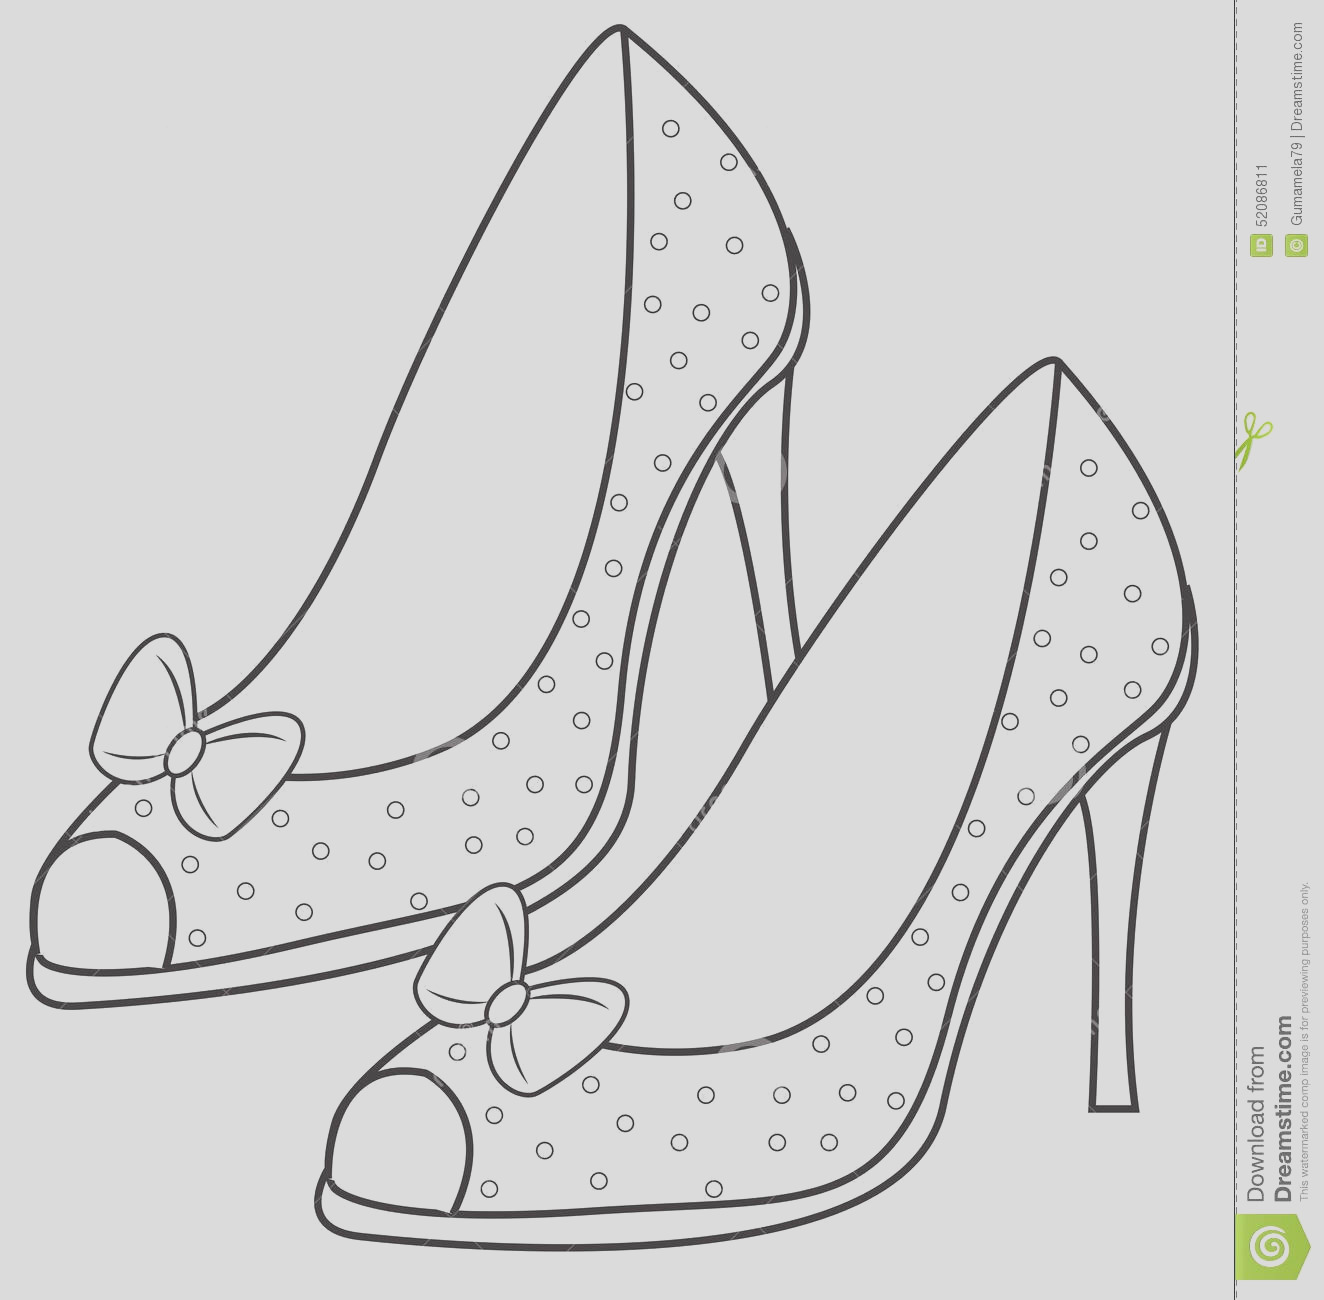 stock illustration lady s sandals coloring page useful as book kids image